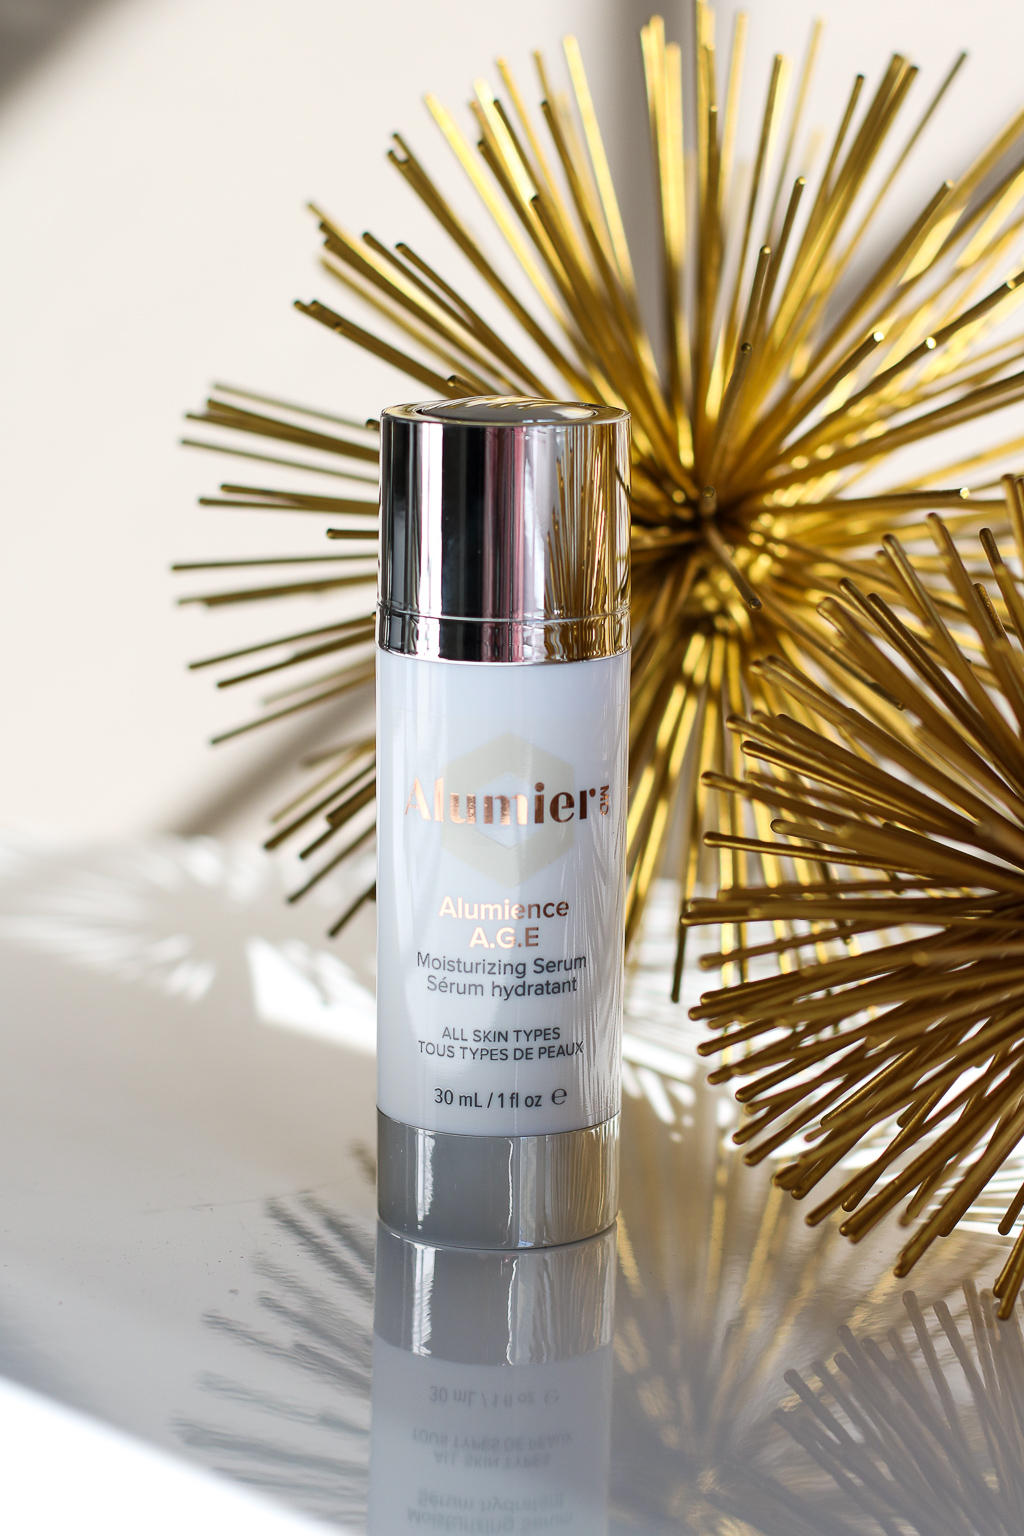 Need help picking a great serum? AlumierMD's Alumience A.G.E is a great product for all skin types!